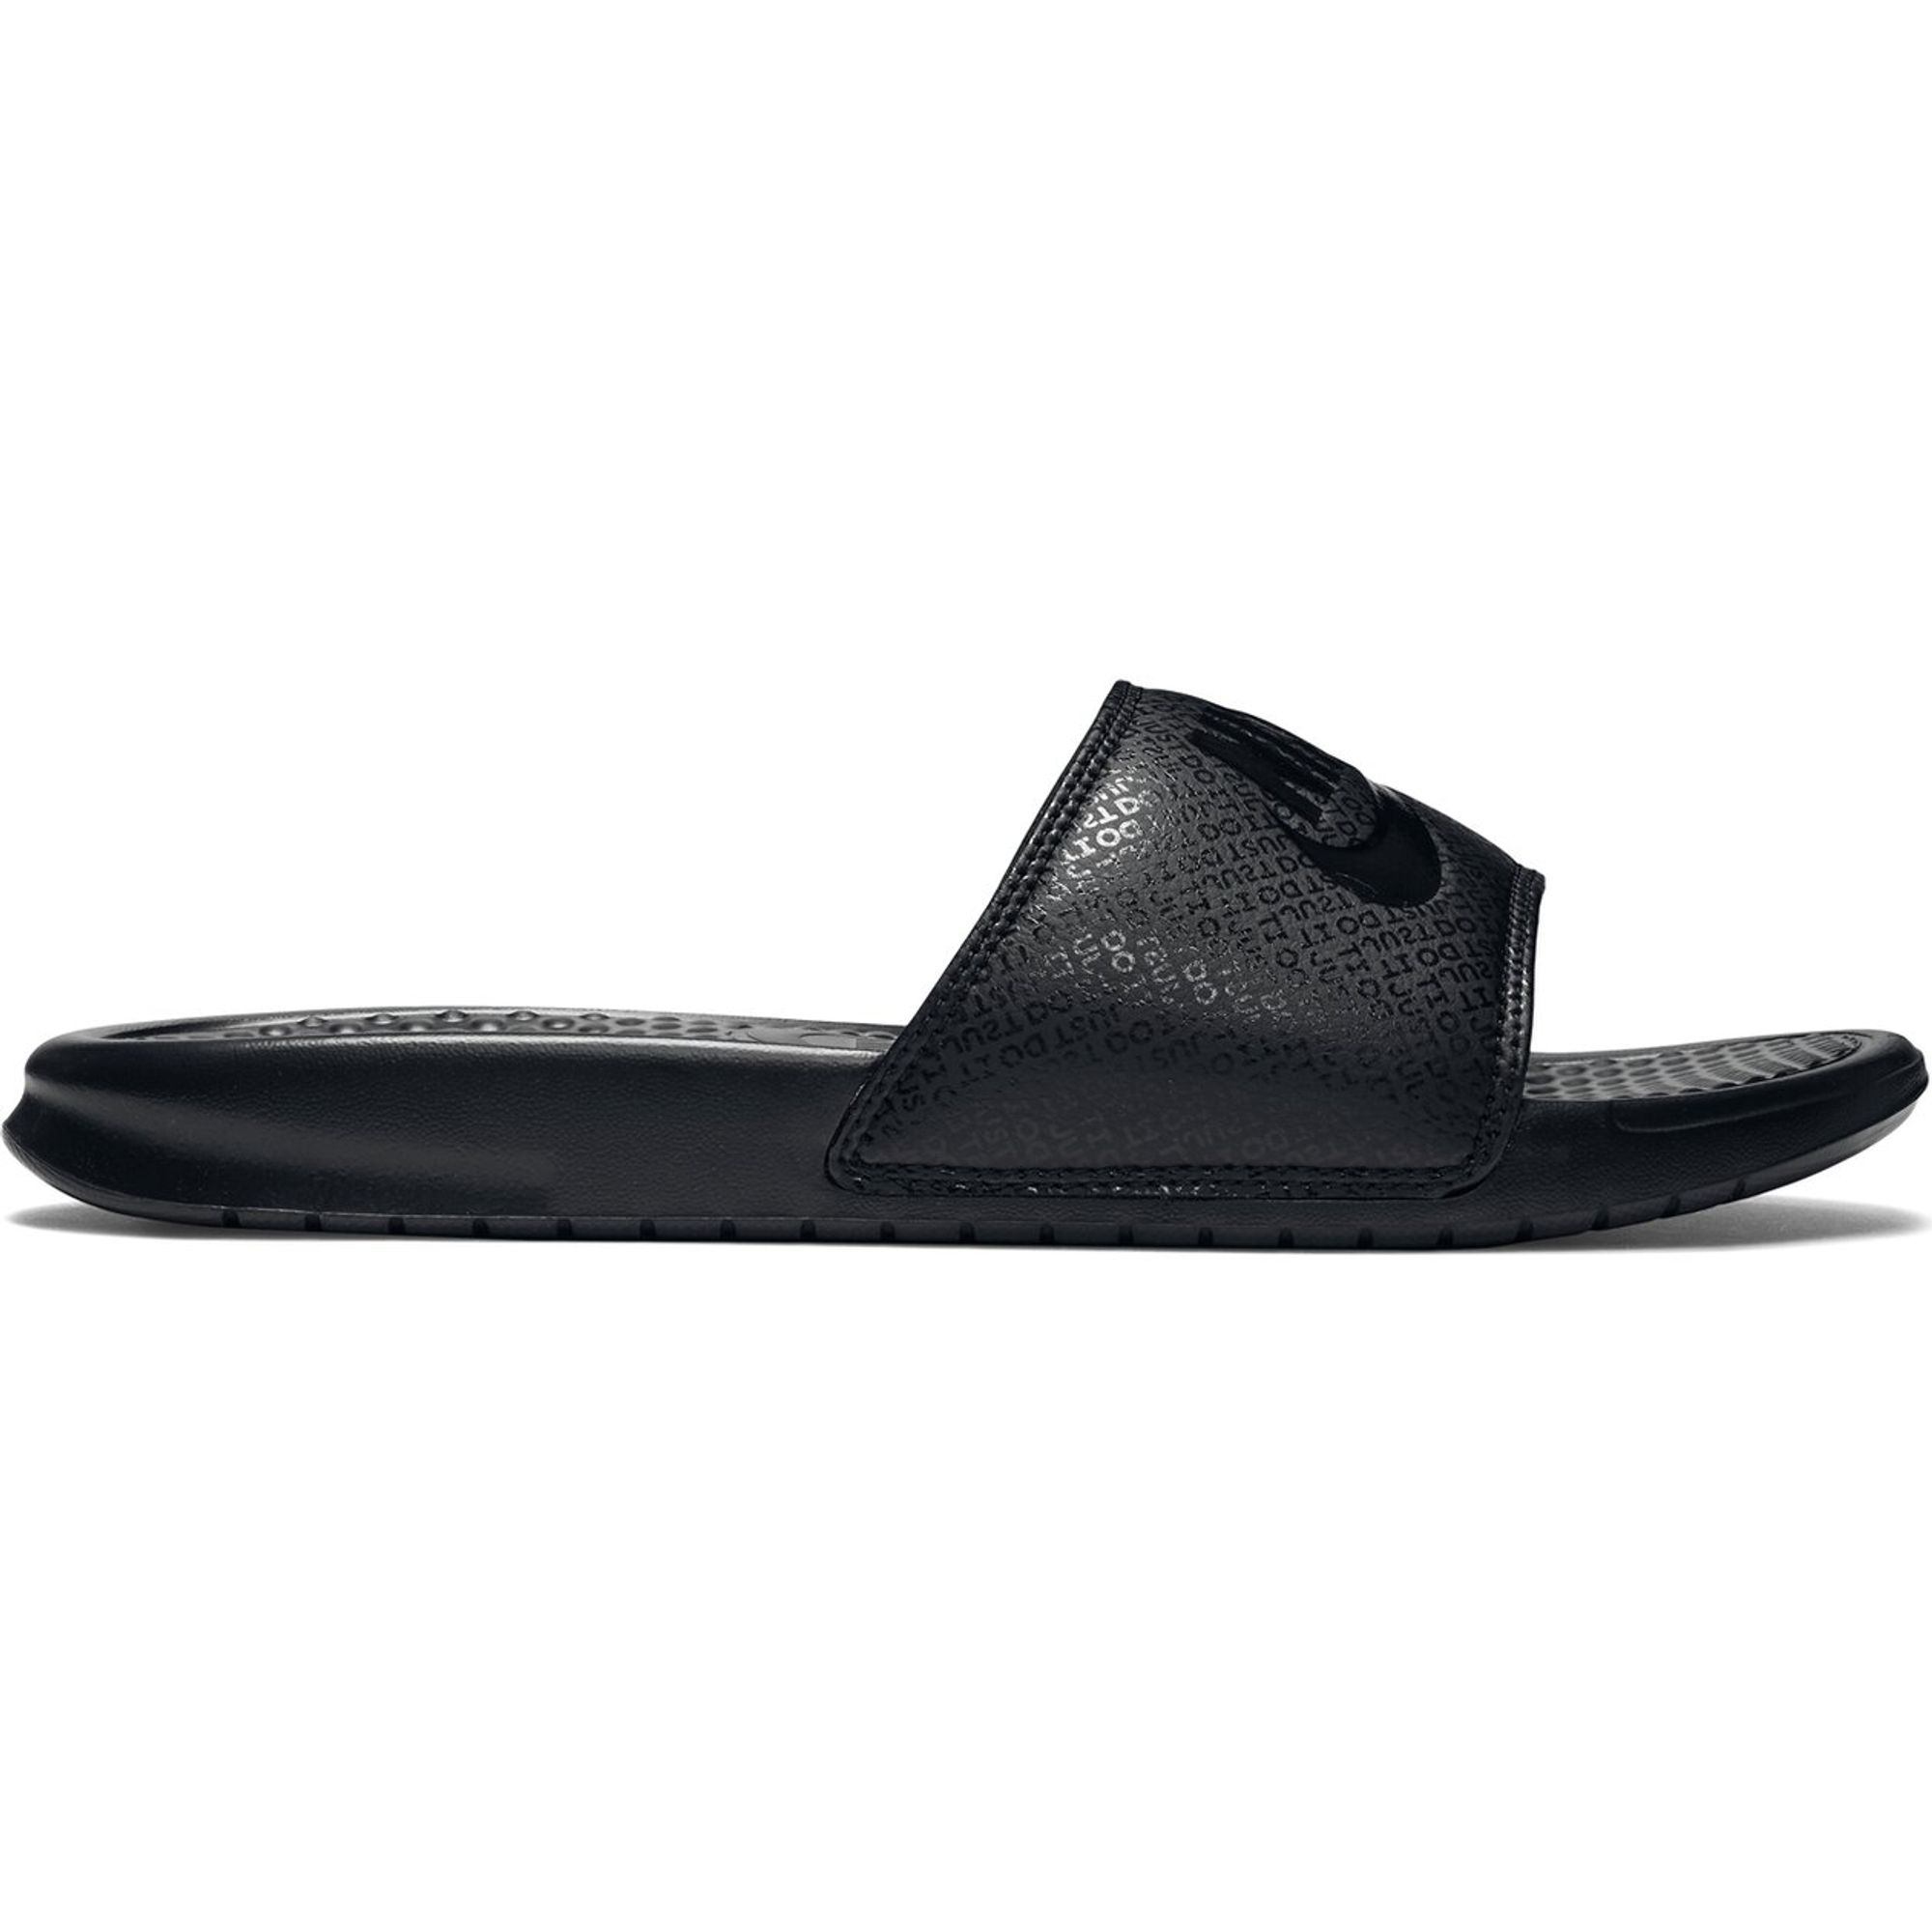 "NIKE Herren Sandalen ""Benassi Just Do It"""